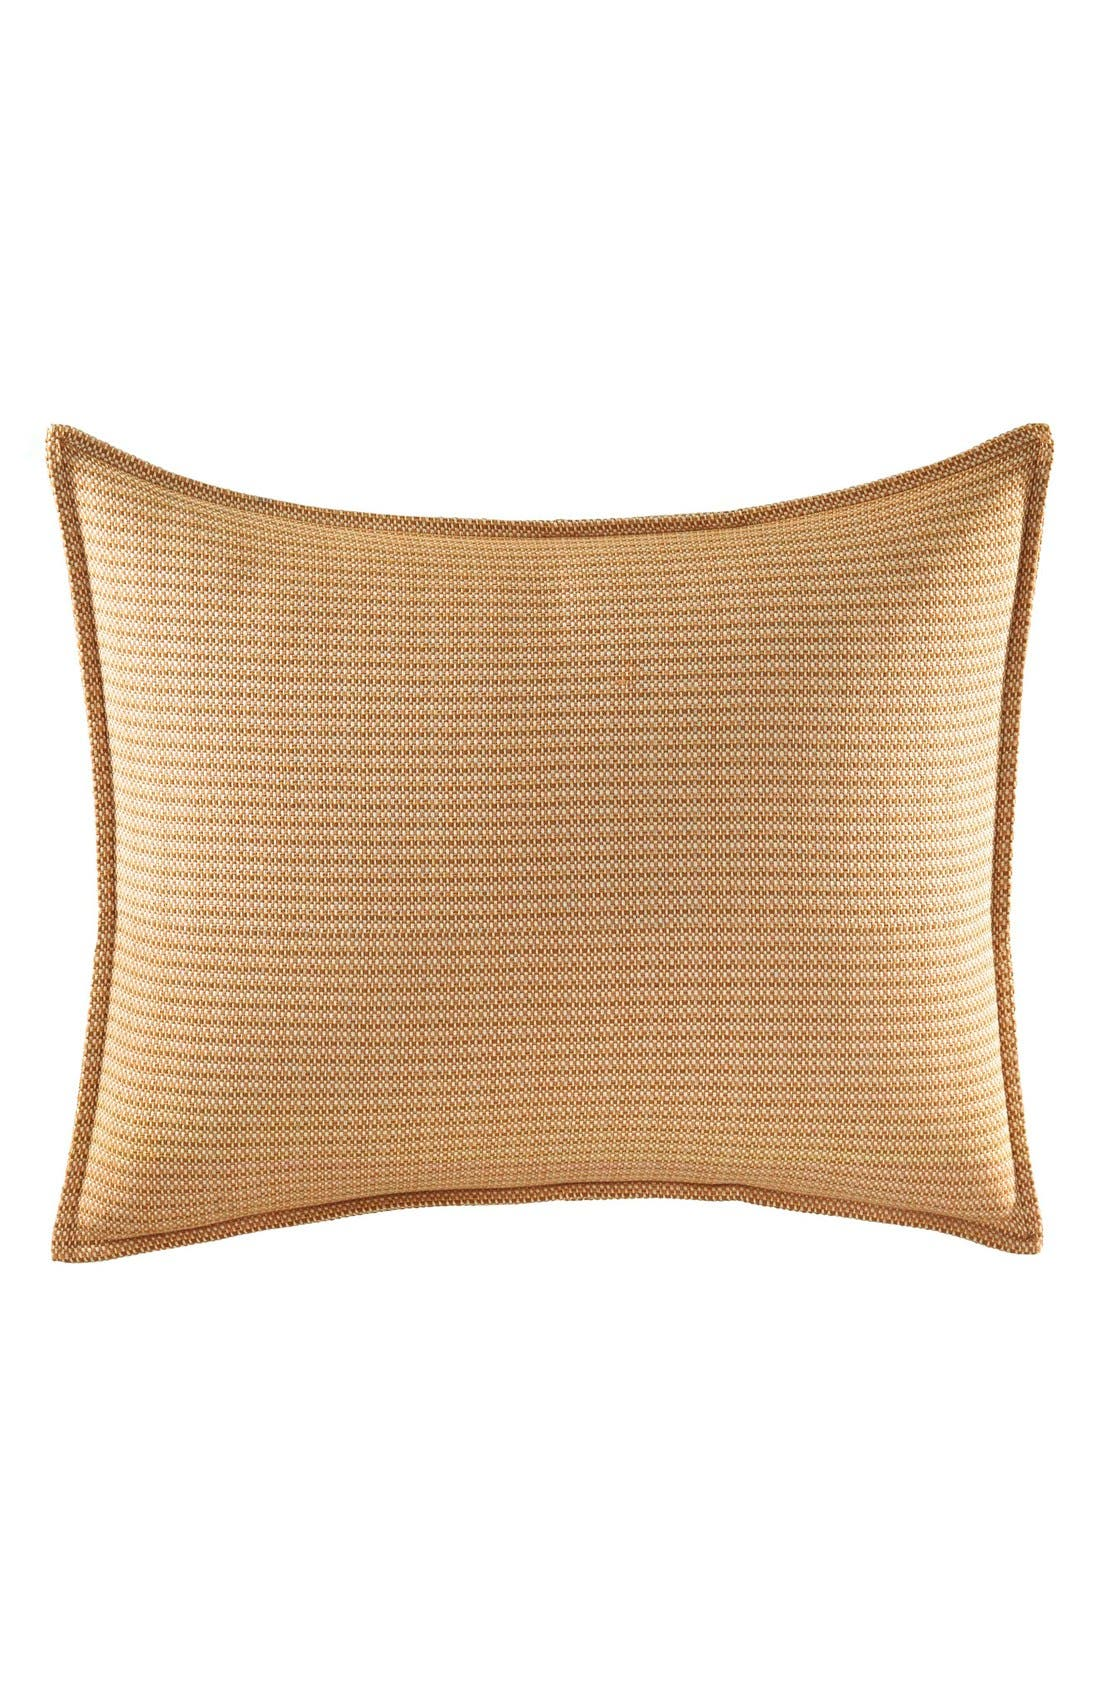 Cayo Coco Pillow,                         Main,                         color, Rust